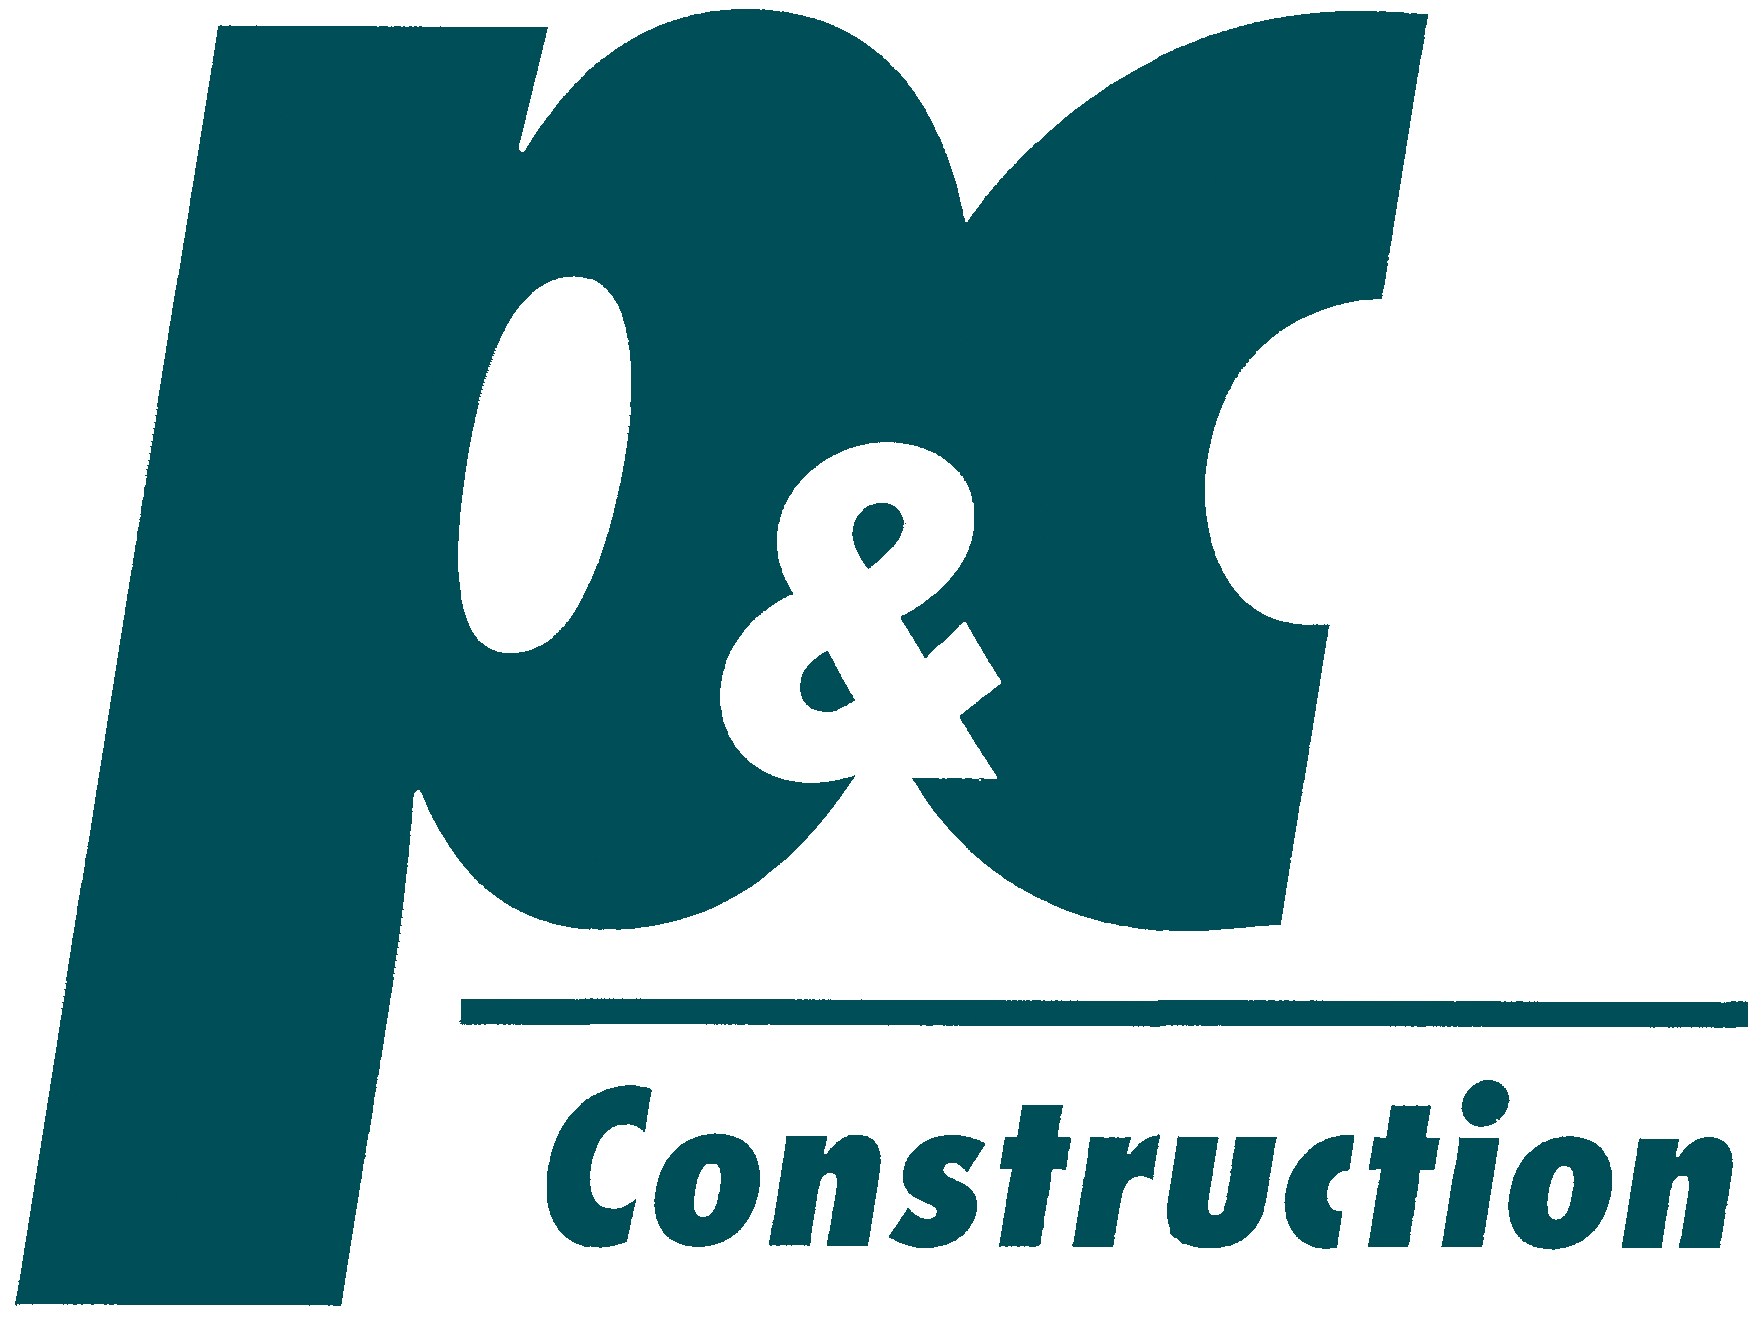 P&C Construction